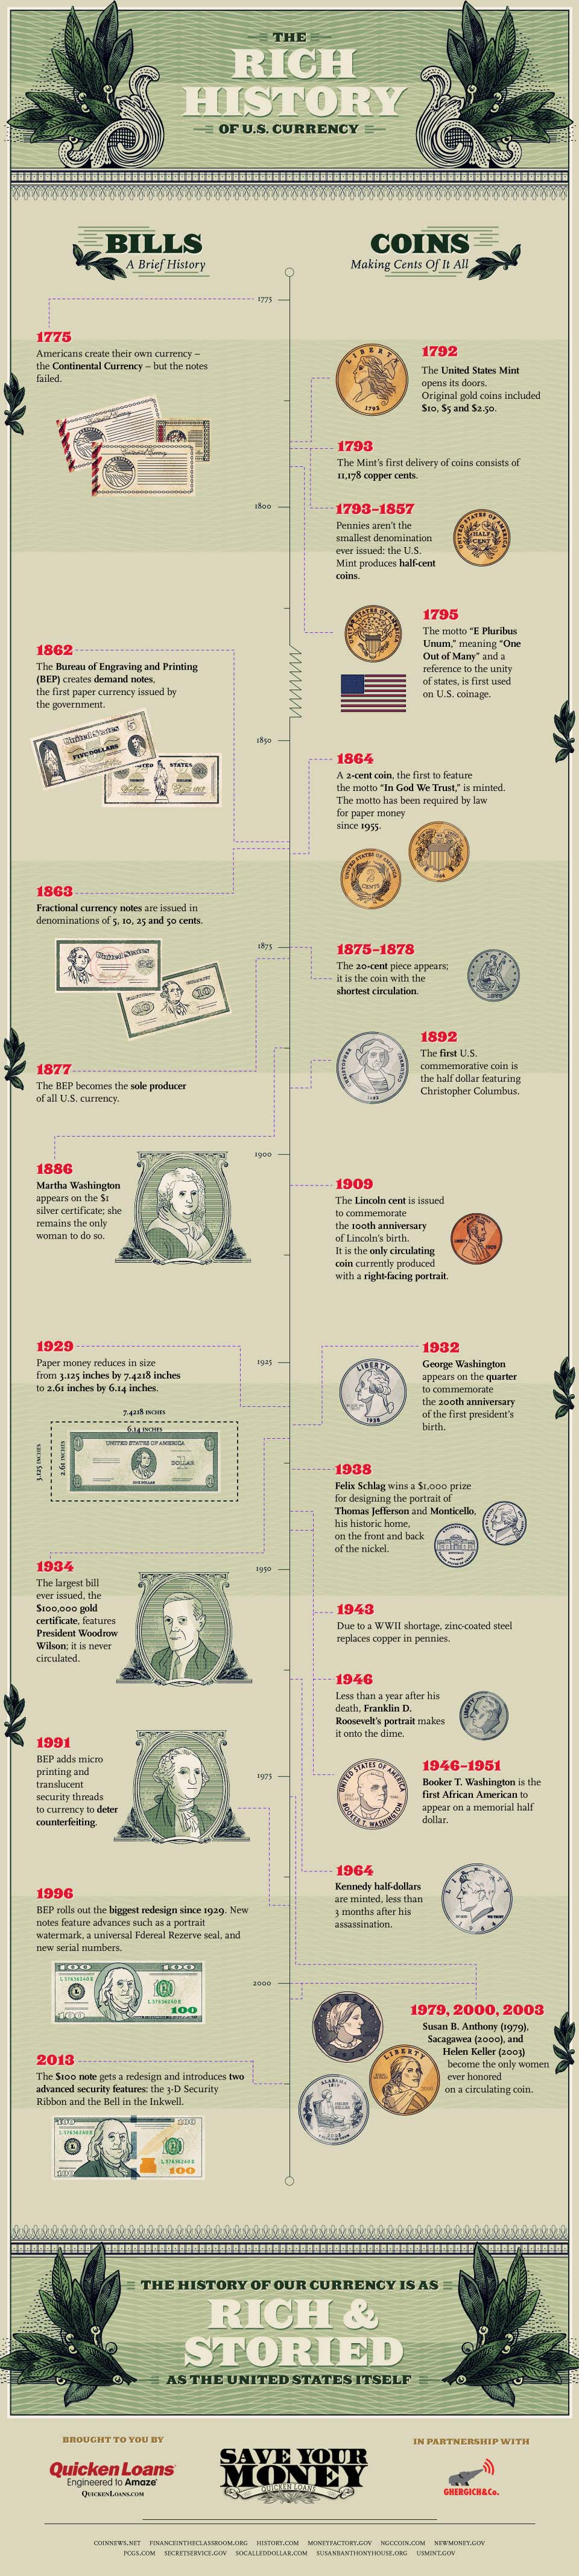 The Rich History of US Currency